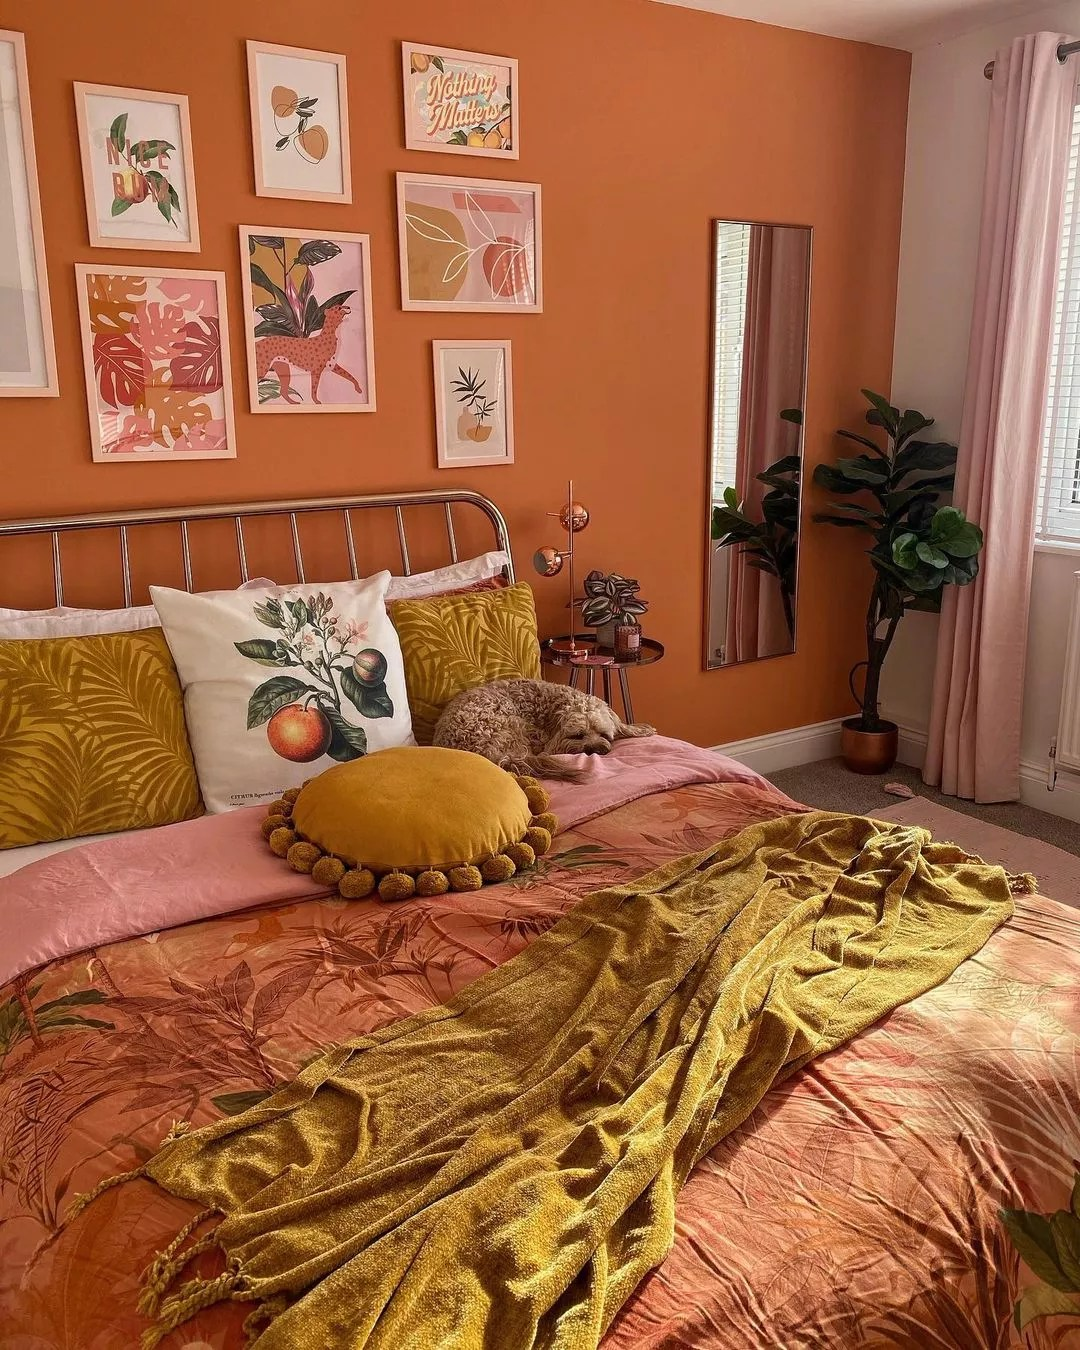 Bright room of orange colors, the focus of which is the terra cotta wall behind the bed. Photo by Instagram user @atnumbersixtyeight.